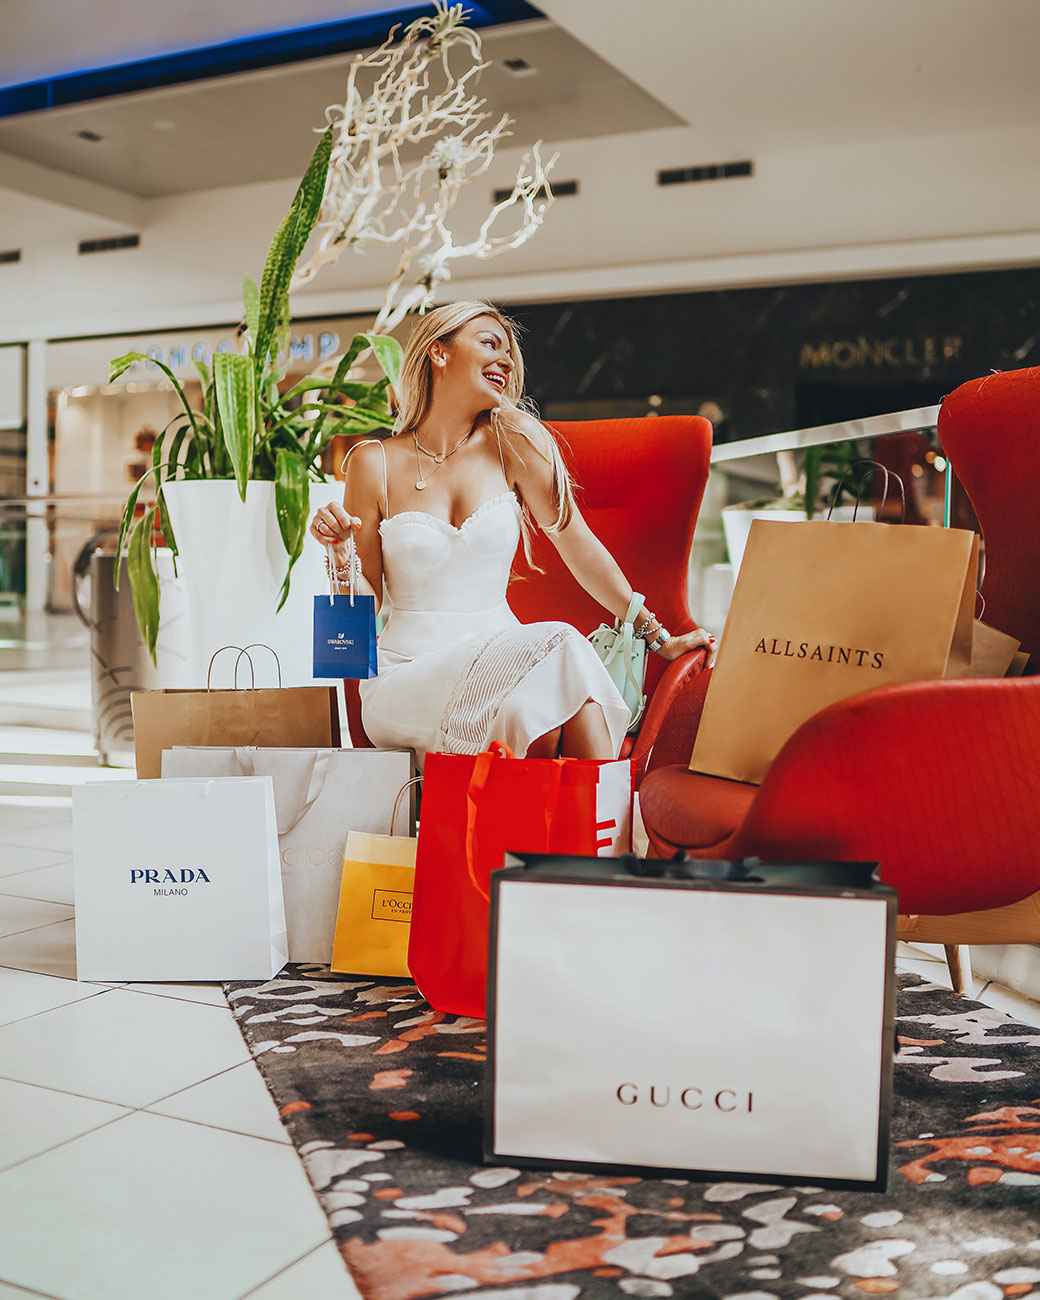 Fashion Outlets of Chicago   Chicago staycation   Staycation in Chicago   Chicago staycation ideas   Staycation near Chicago   Rosemont staycation   Rosemont restaurants   Rosemont mall   Hotels by Rosemont   Travel Chicago   Bubbly Moments